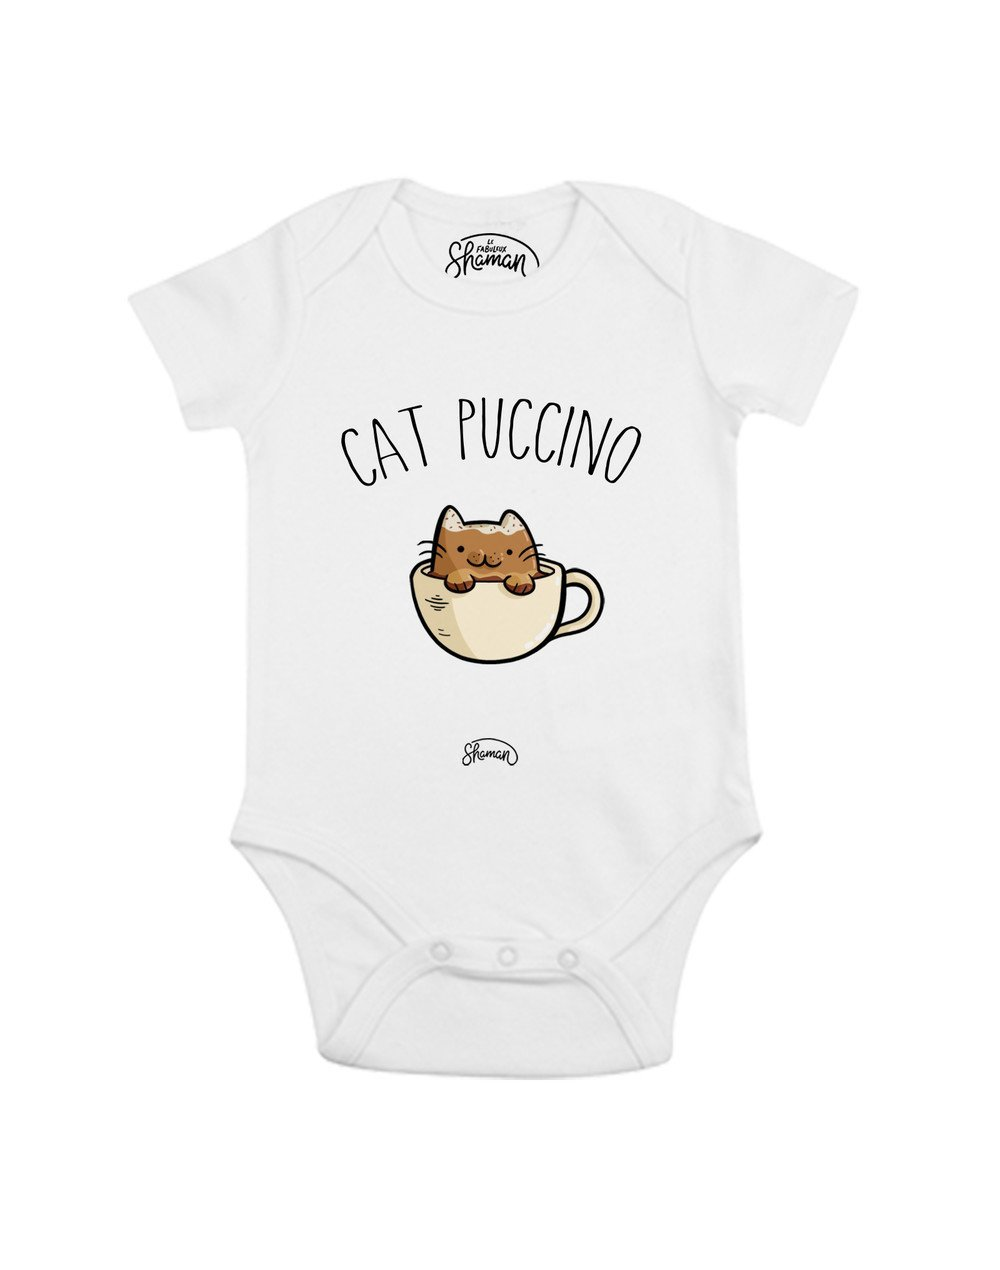 Body Cat puccino